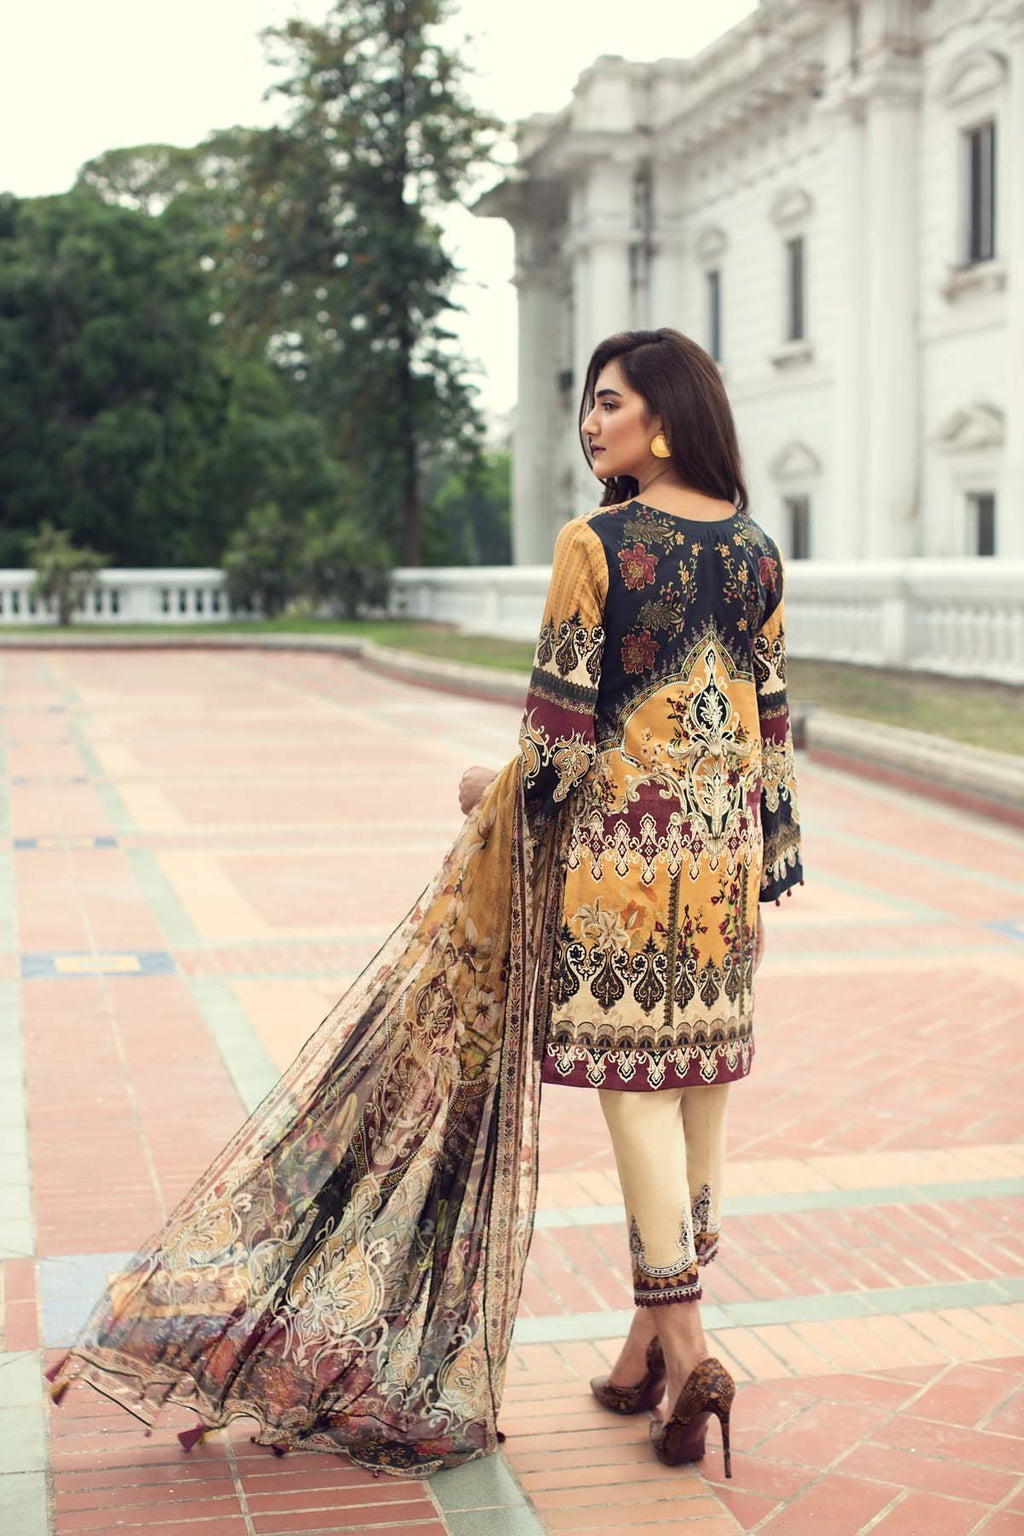 IRIS Summer Lawn 2019 suit Farié Dust